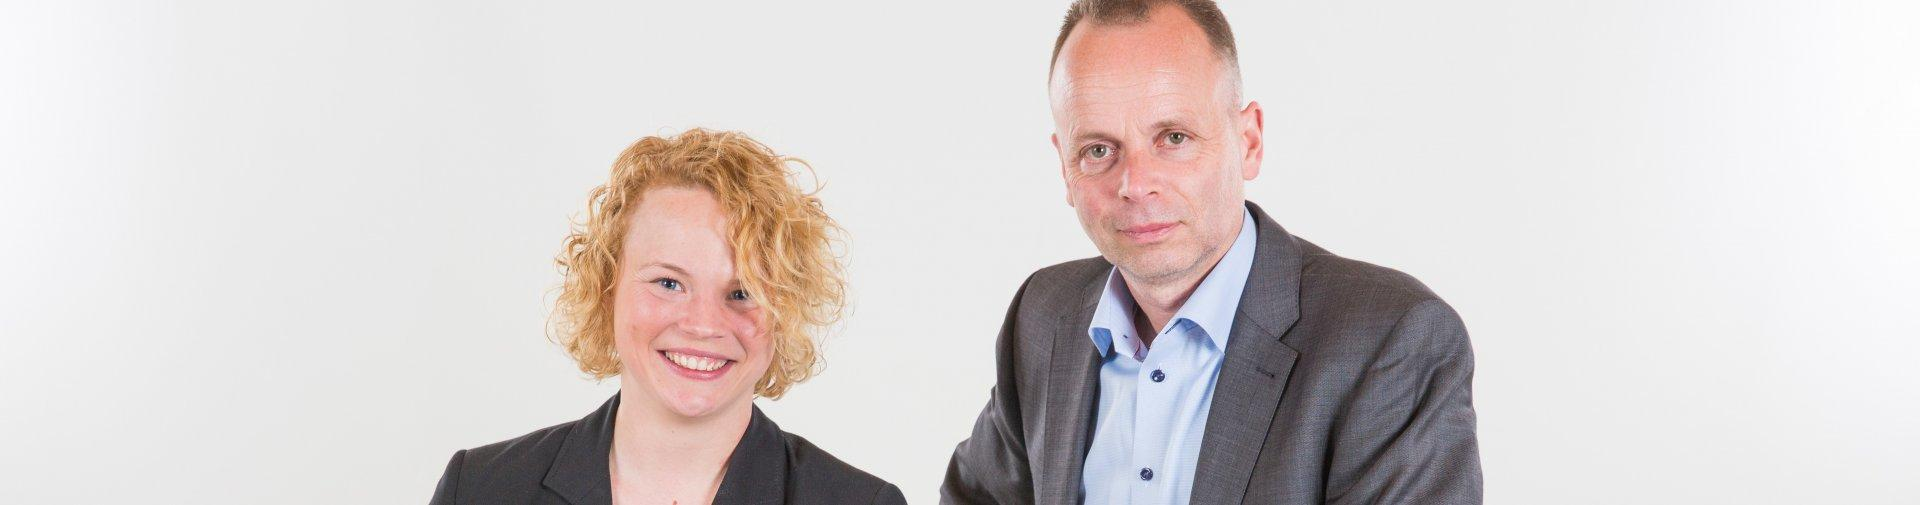 hr helpdesk corporate relocation de haan relocation questions about international mobility